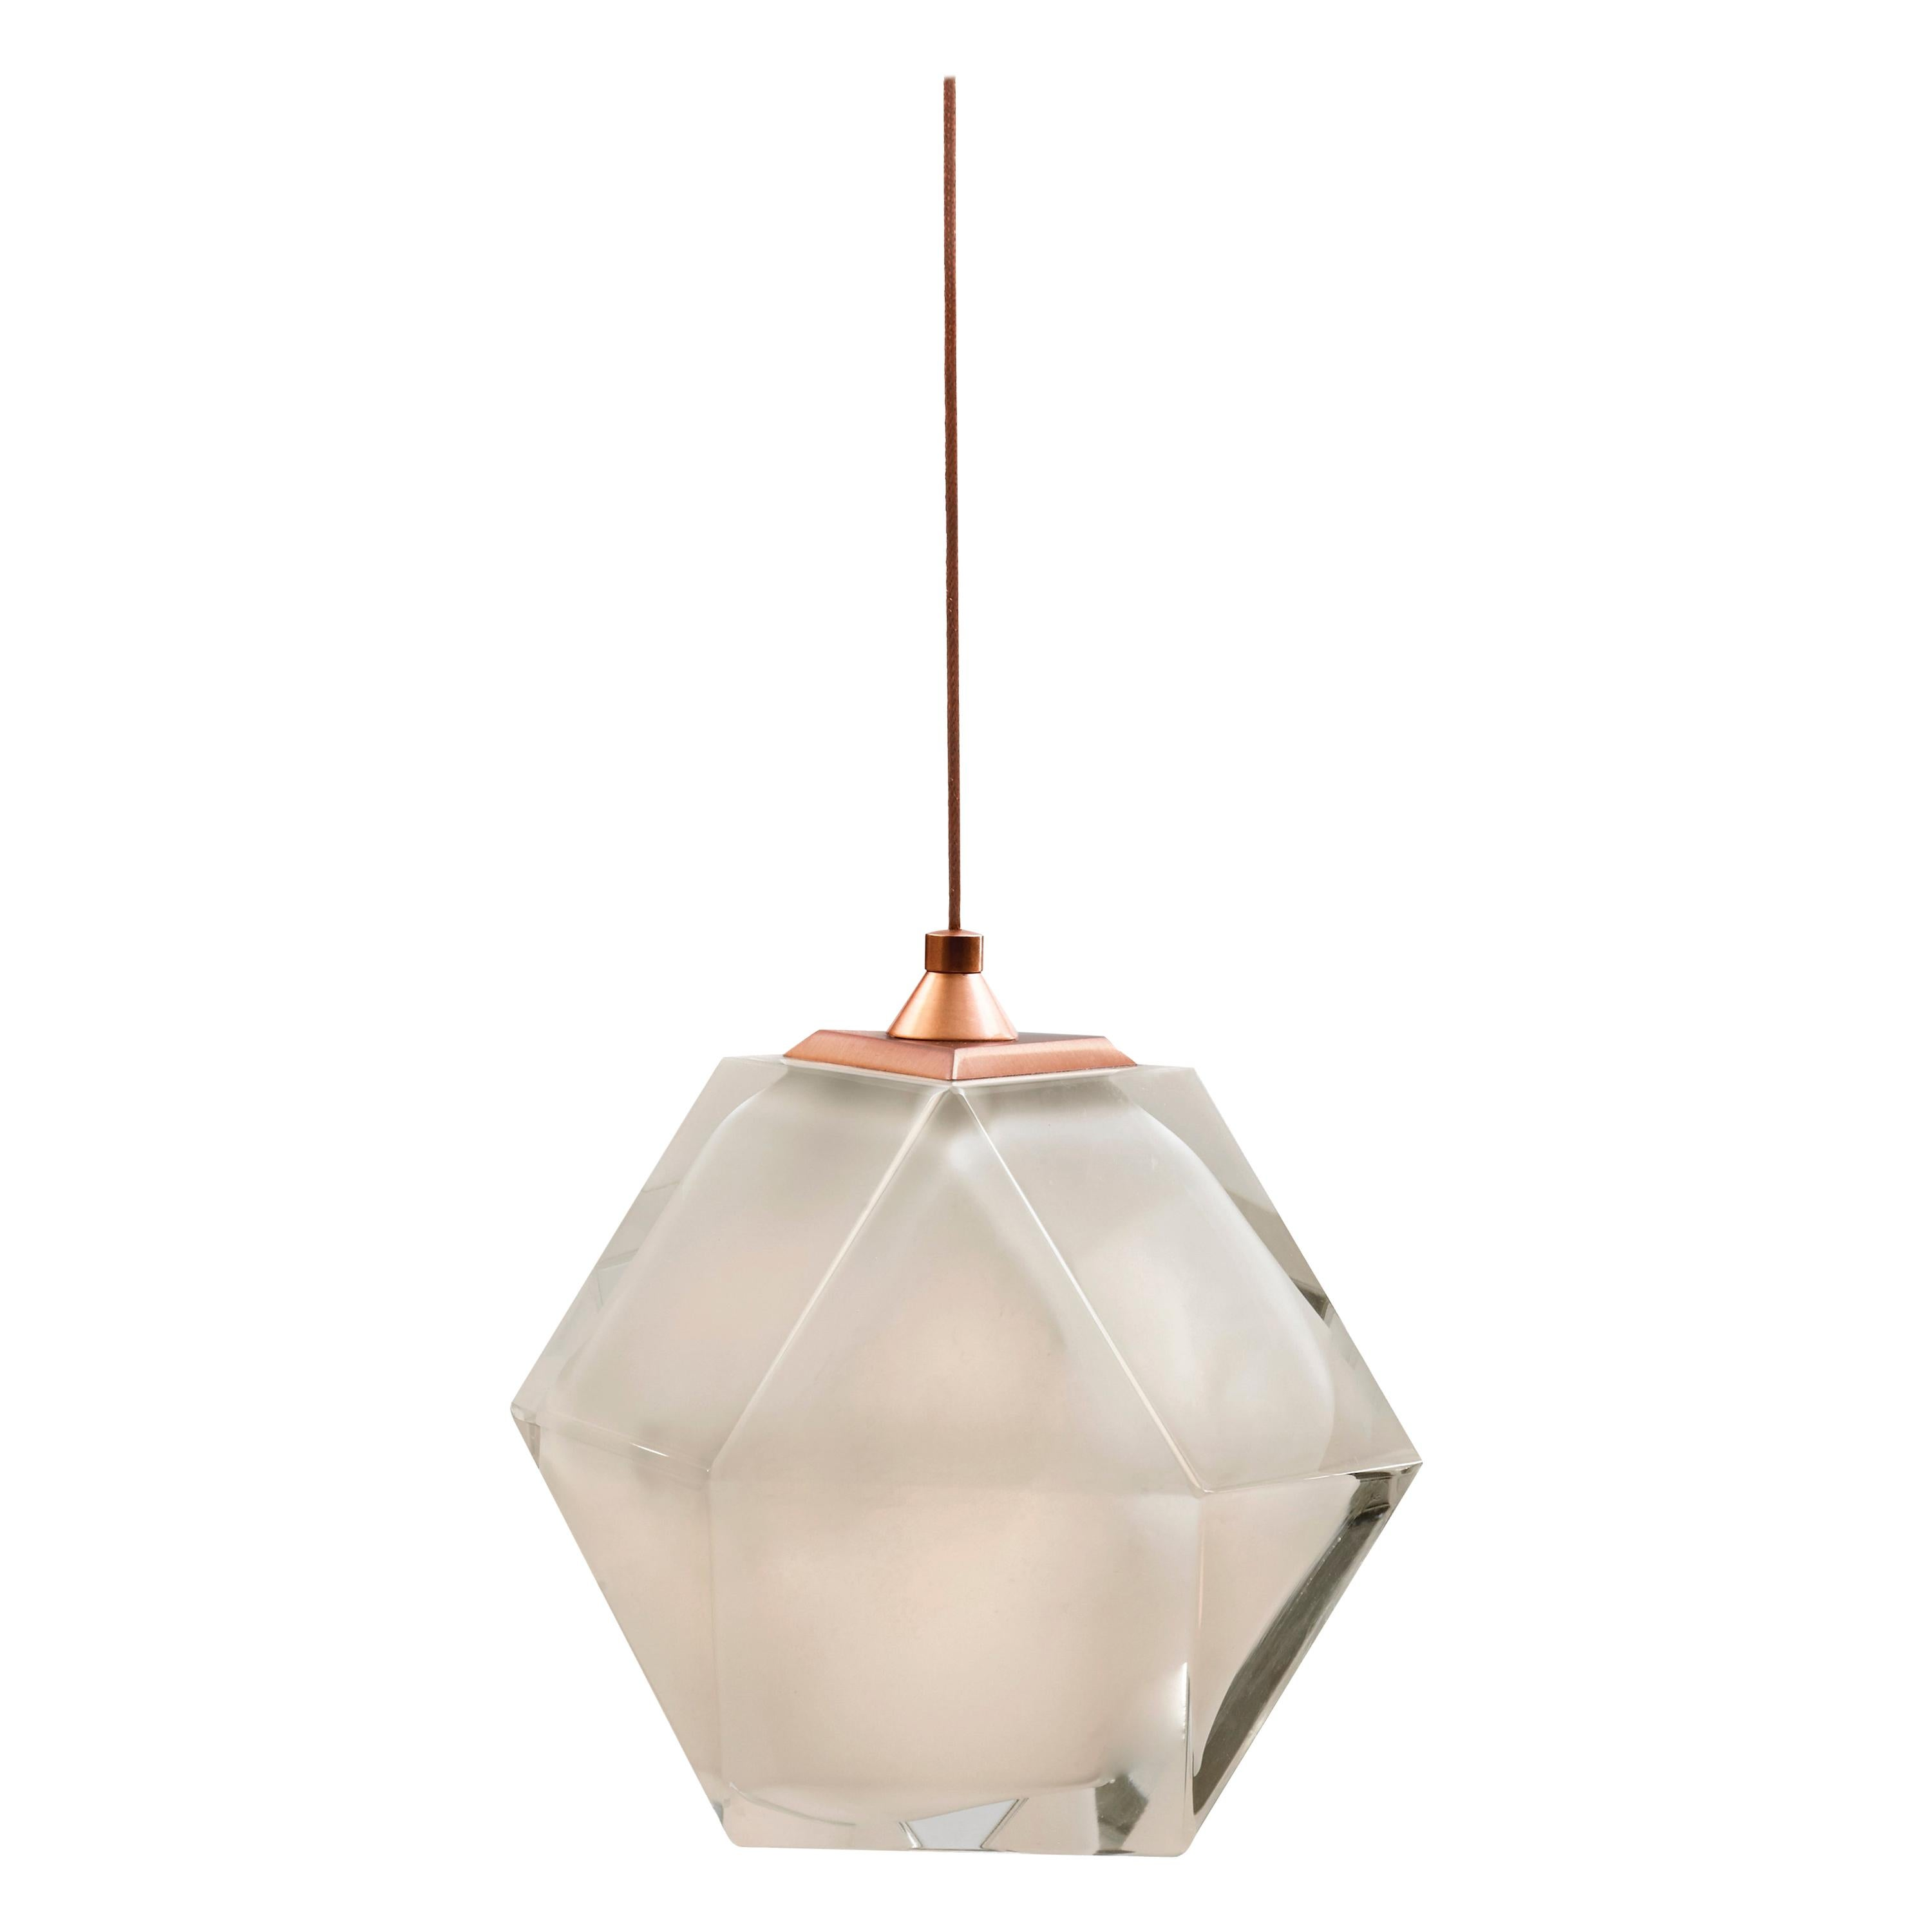 Welles Double Blown Glass Hanging Sconce in Alabaster White by Gabriel Scott